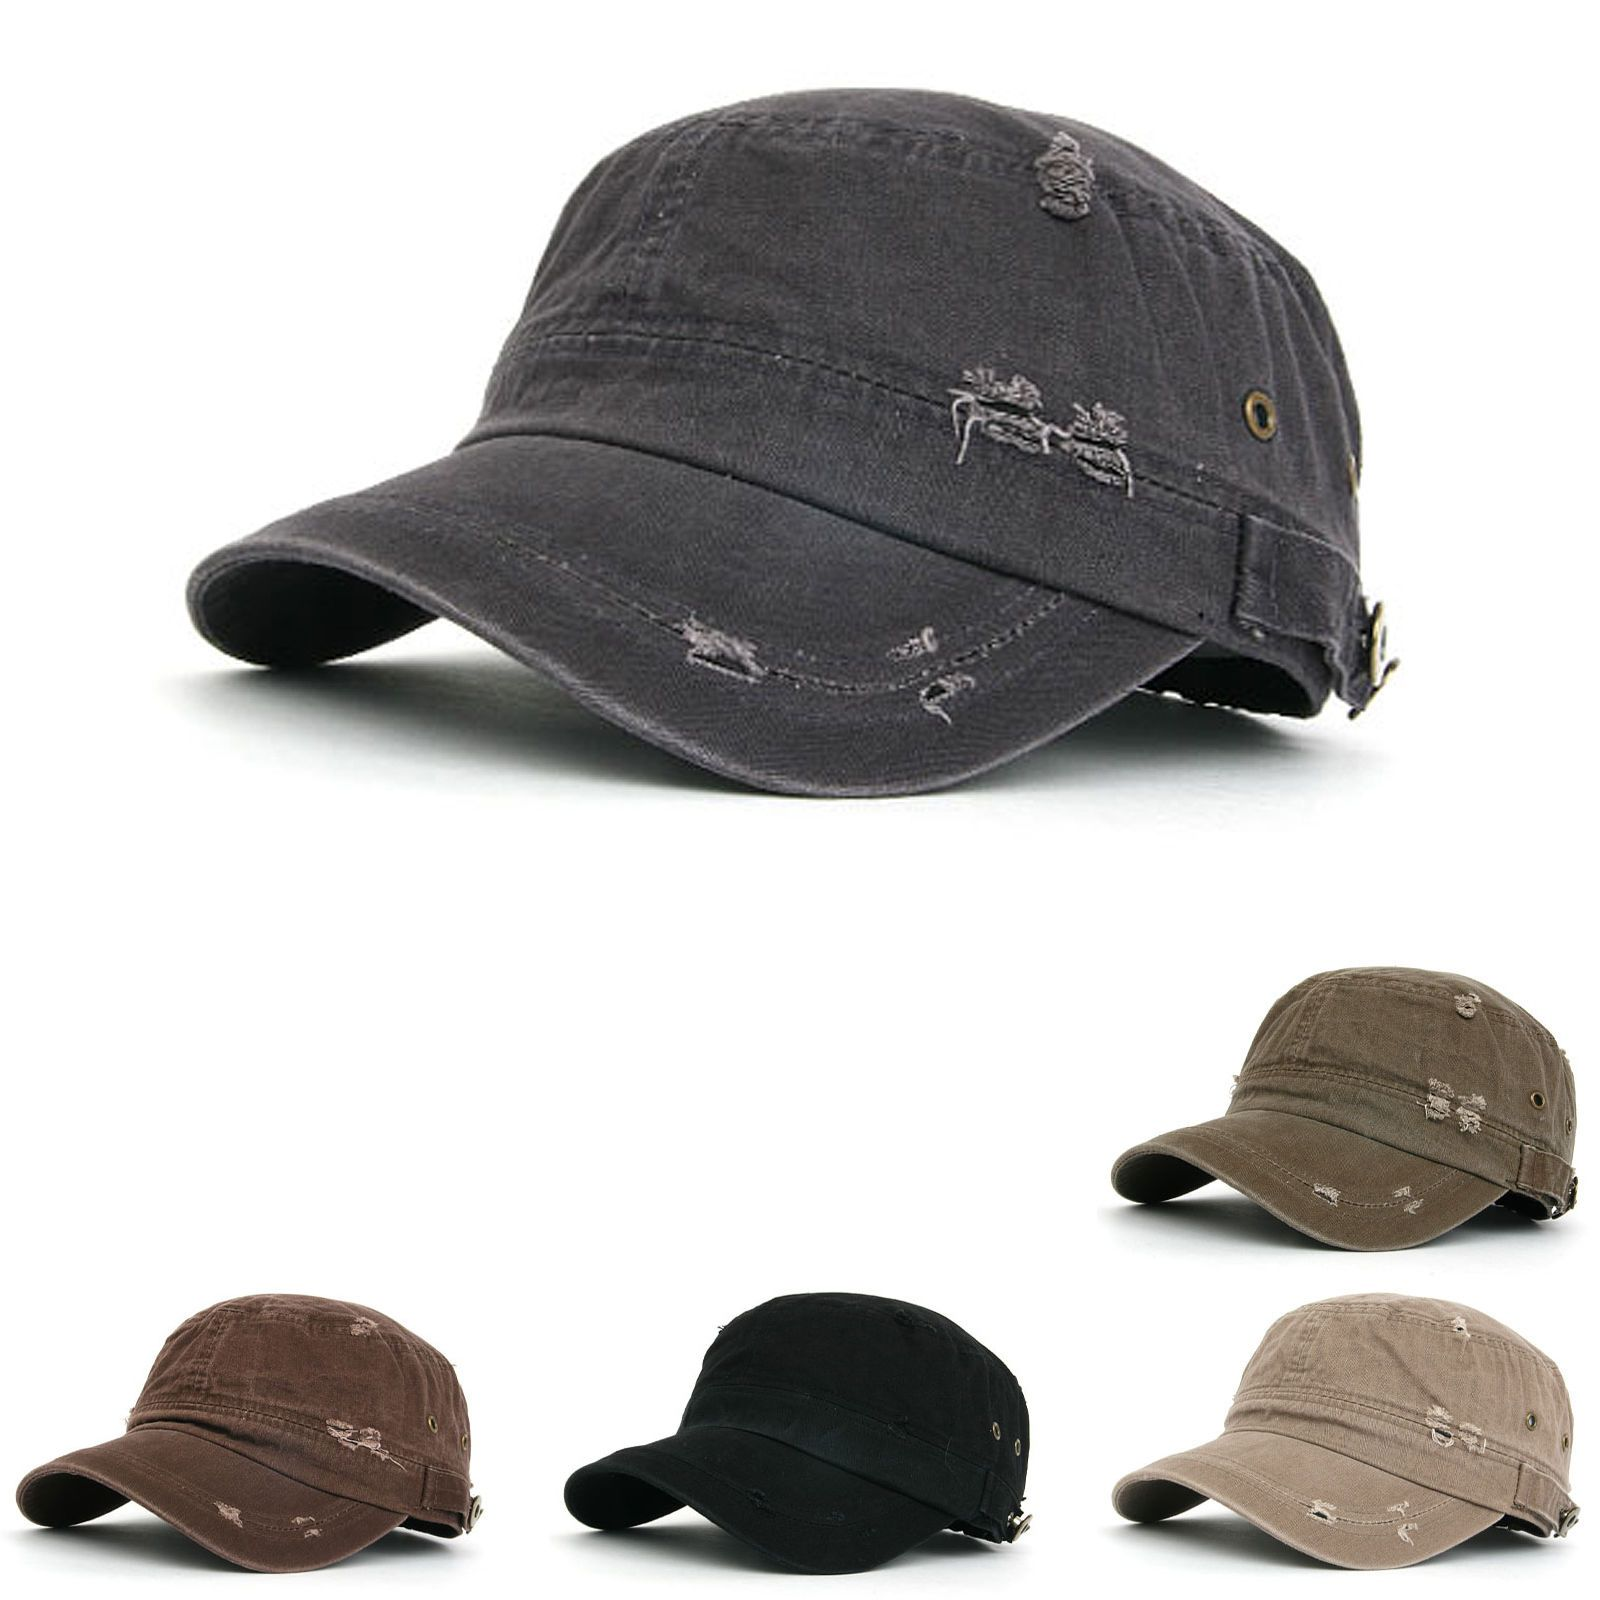 5f5e29fdbf0 Mens Womens Classic Distressed Vintage Army Military Cadet Patrol Castro Cap  Hat